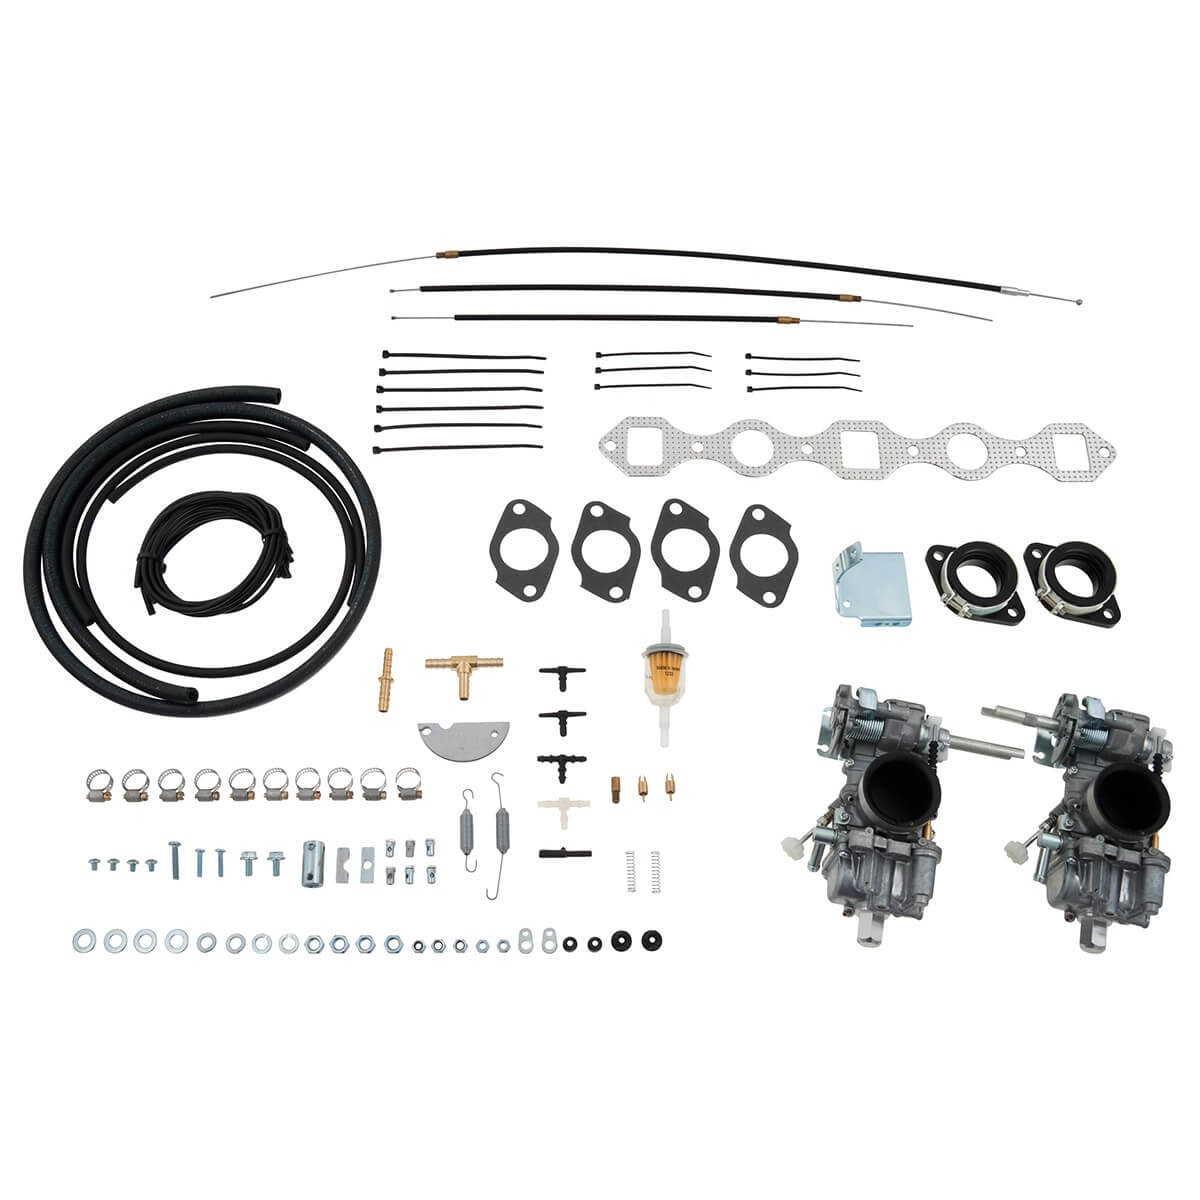 Mikuni Carburetor Conversion Kit